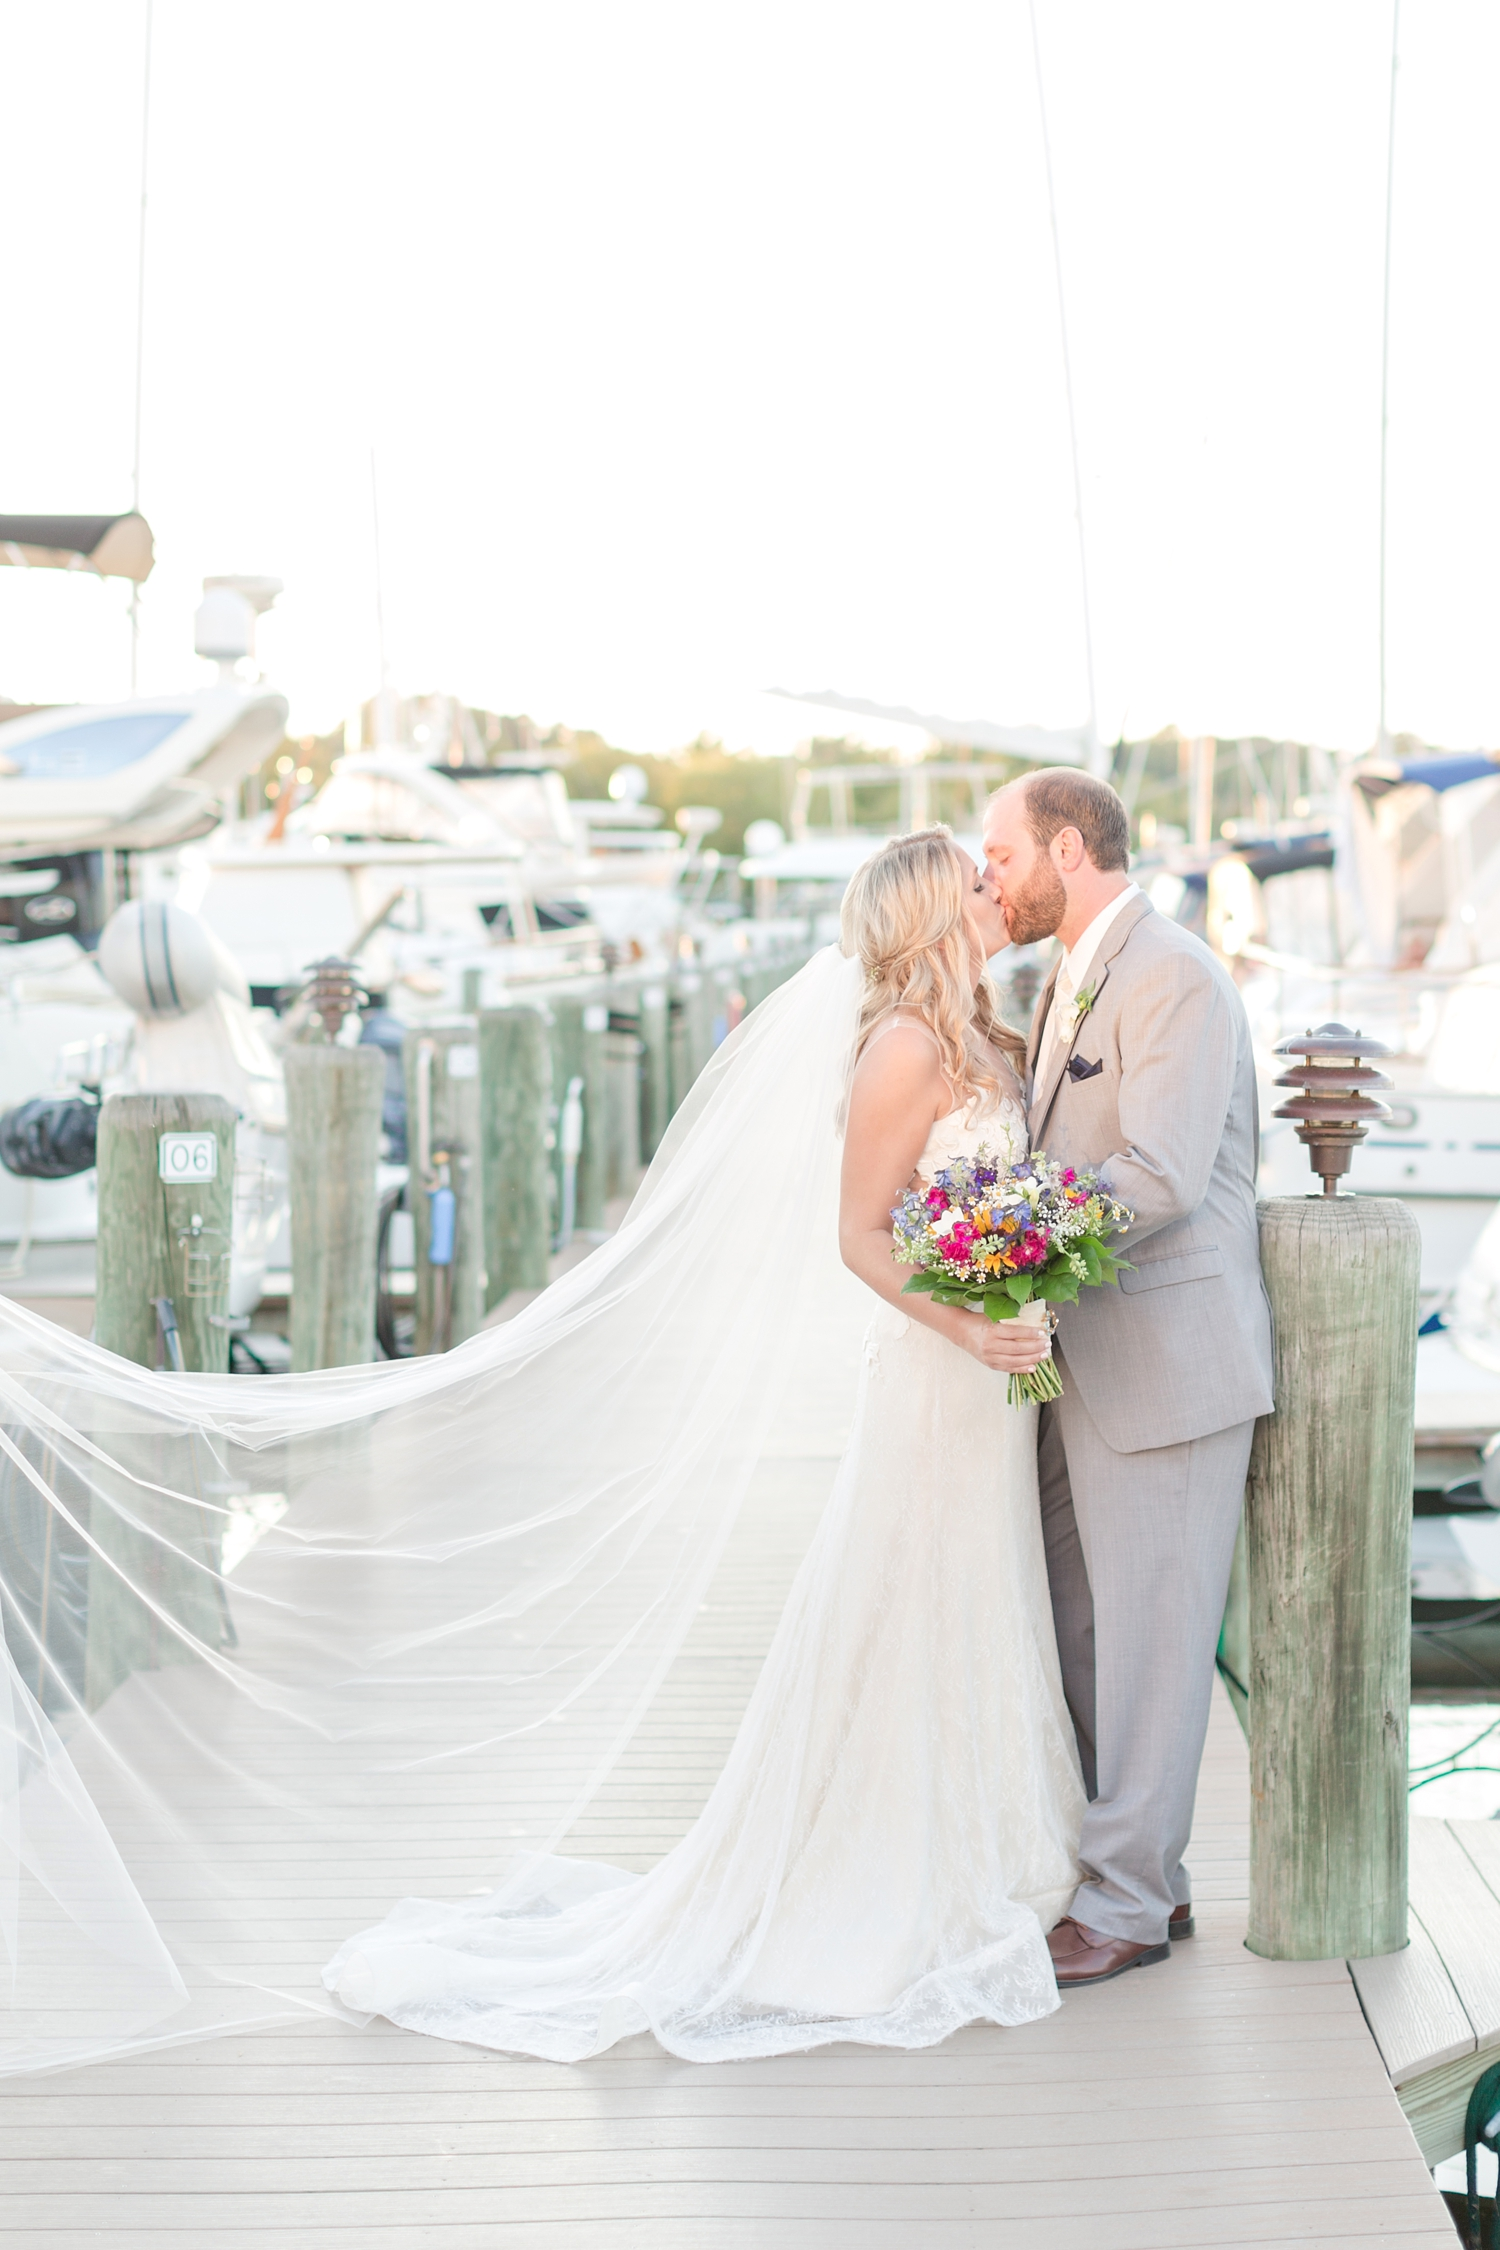 LANG WEDDING HIGHGLIGHTS-307_herrington-on-the-bay-wedding-annapolis-maryland-wedding-photographer-anna-grace-photography-photo.jpg